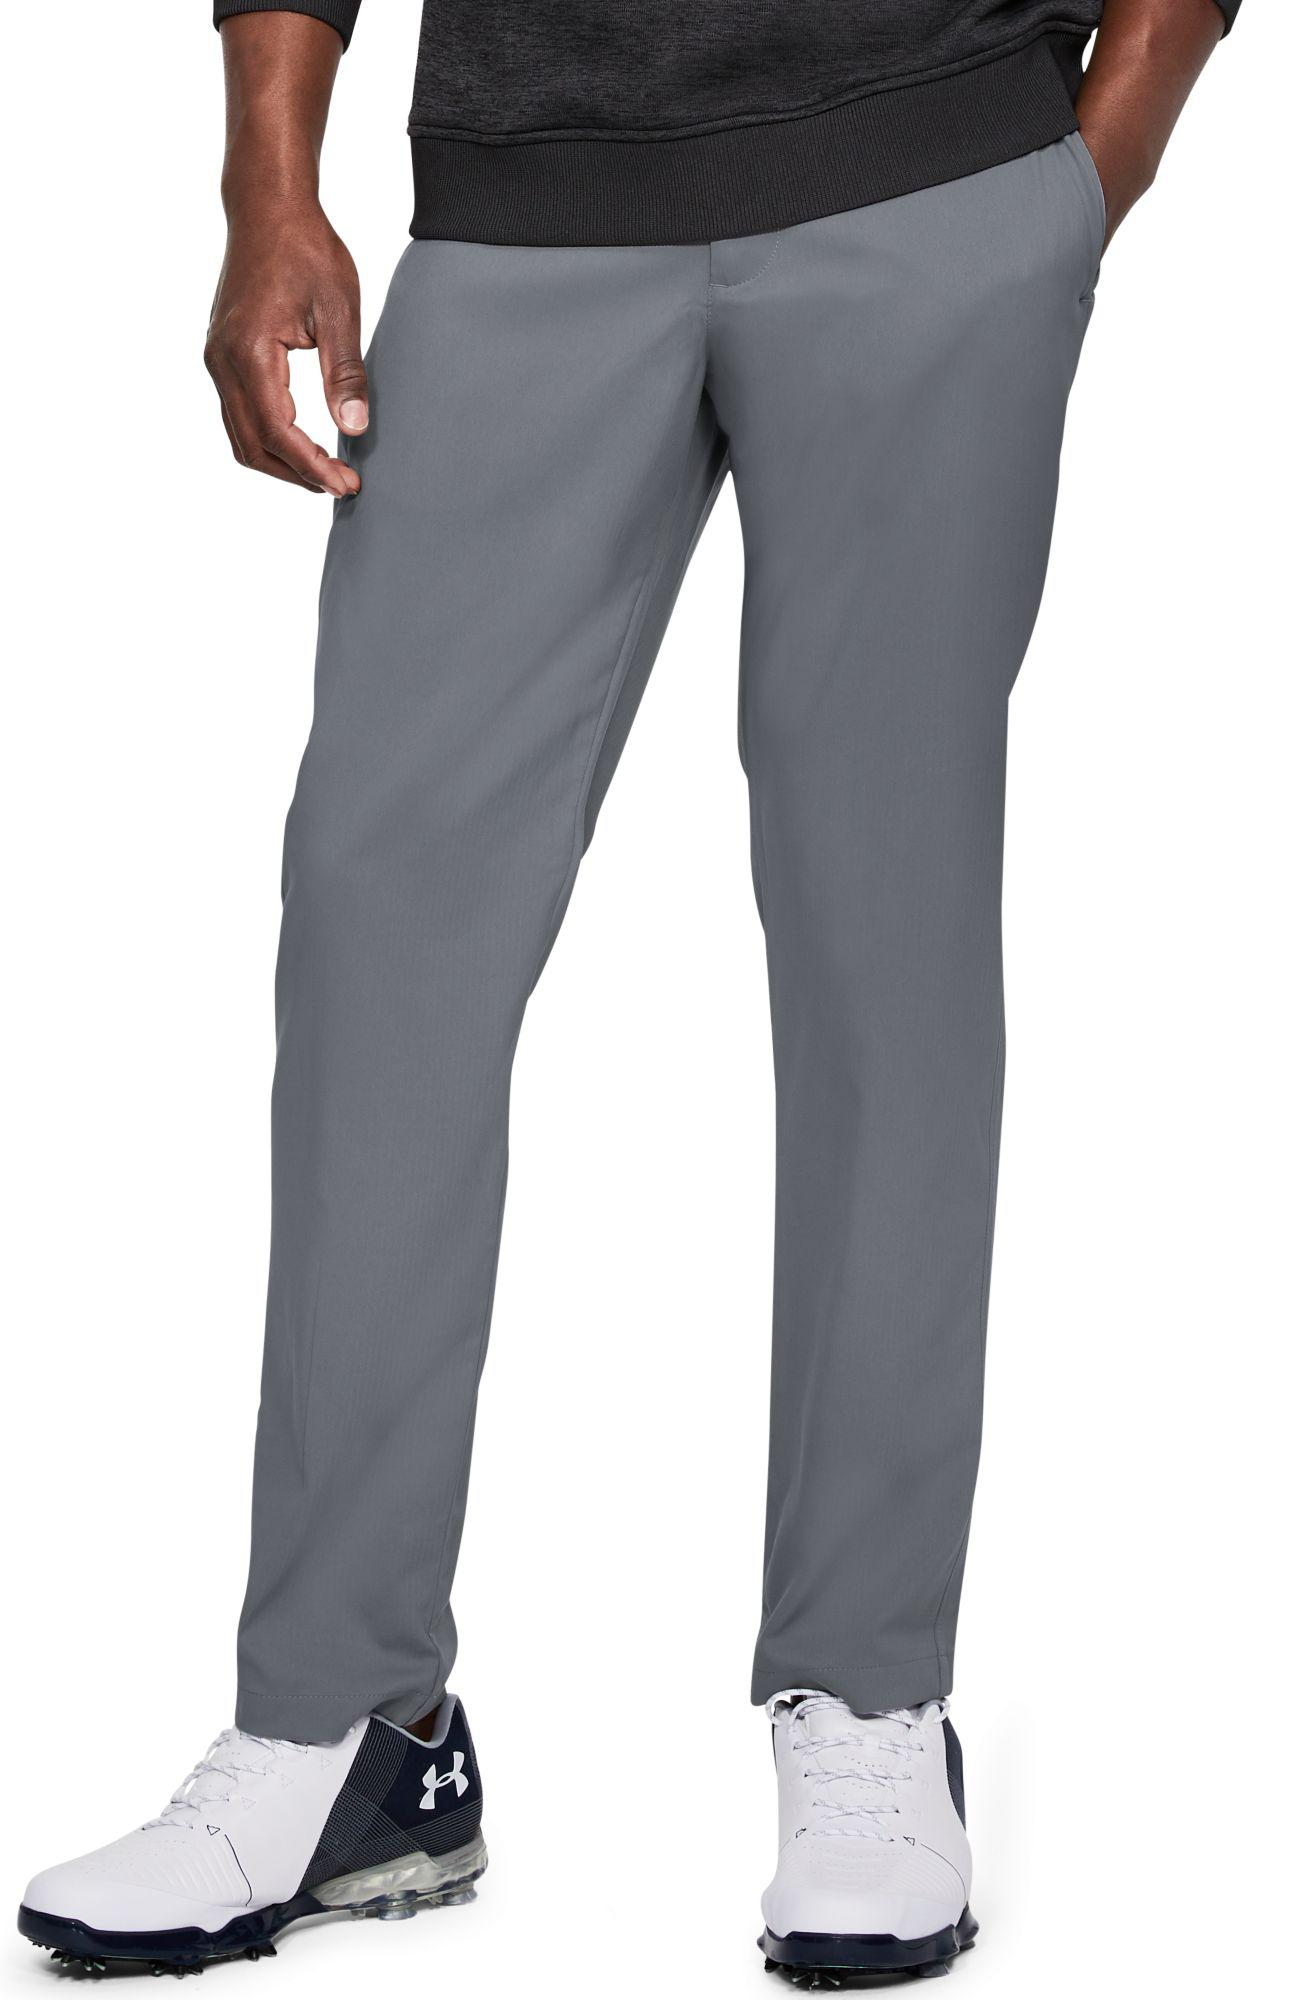 1c458f047ff01 Under Armour Showdown Tapered Leg Golf Pants in Gray for Men - Lyst